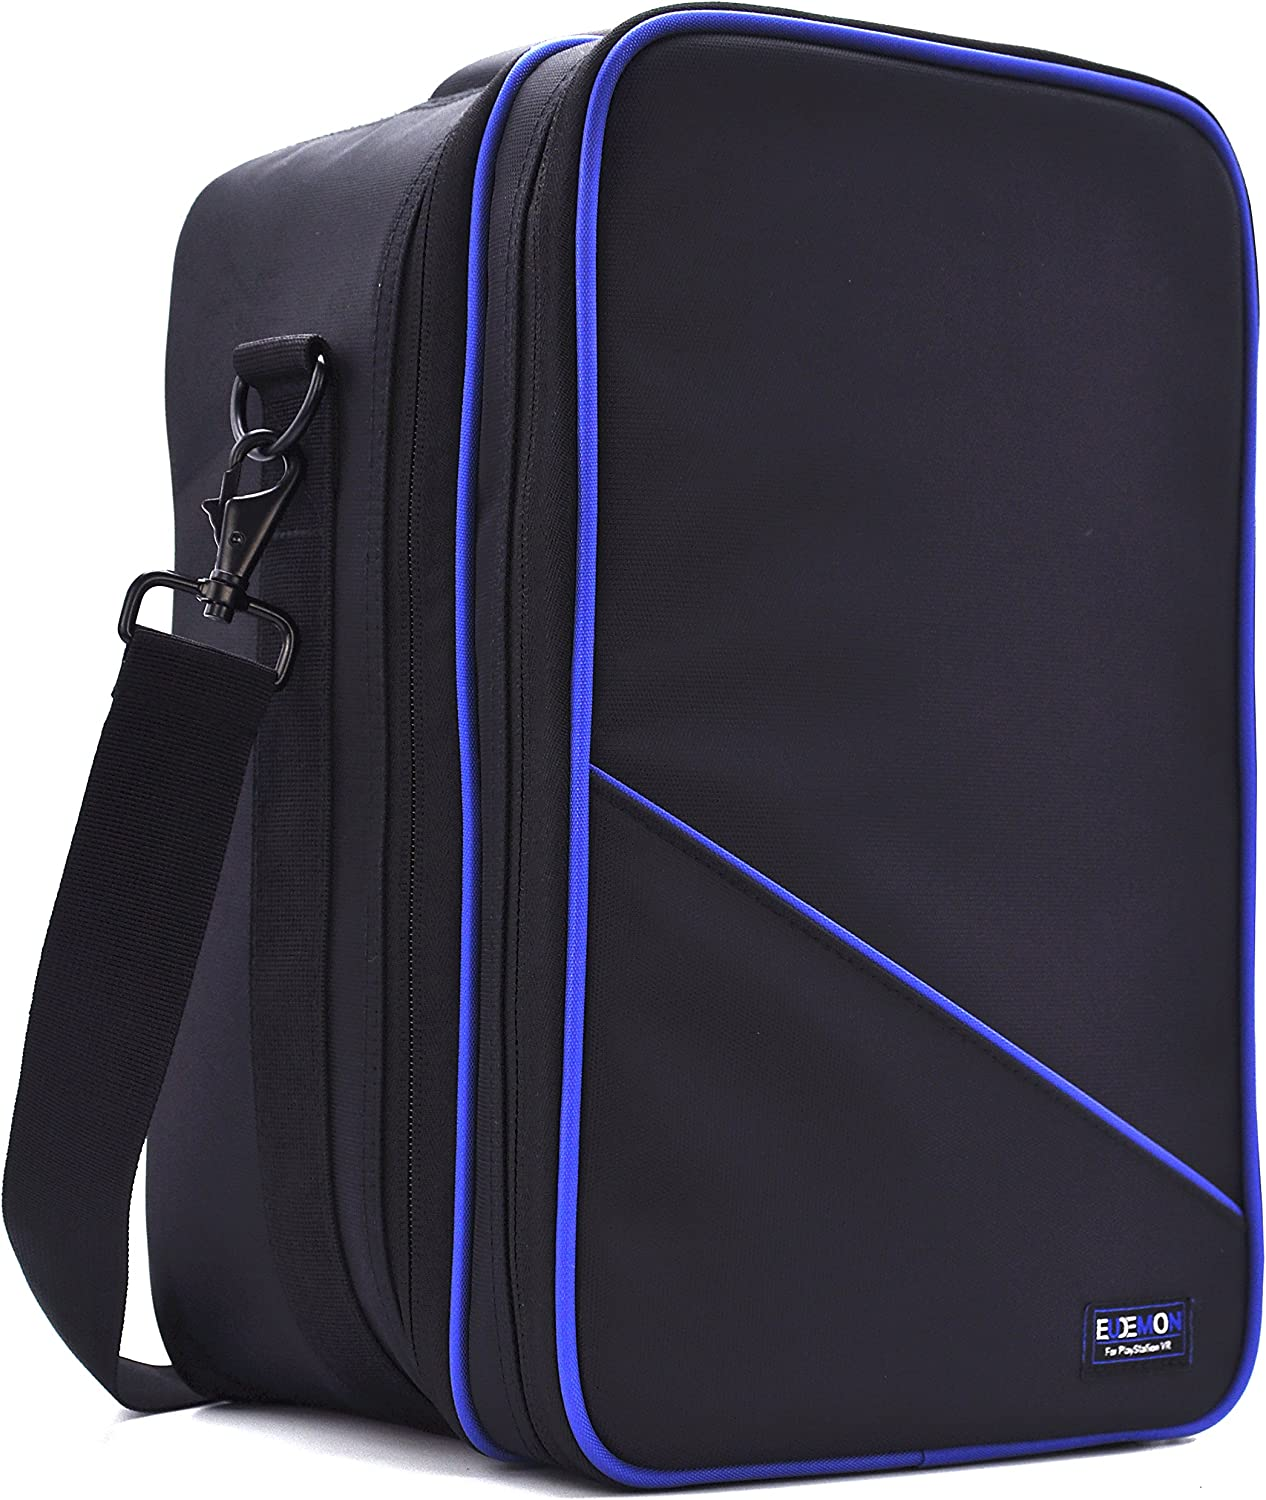 EUDEMON Deluxe Carrying Case for PlayStation VR (PSVR), Headset and Accessories Storage Case - PlayStation 4